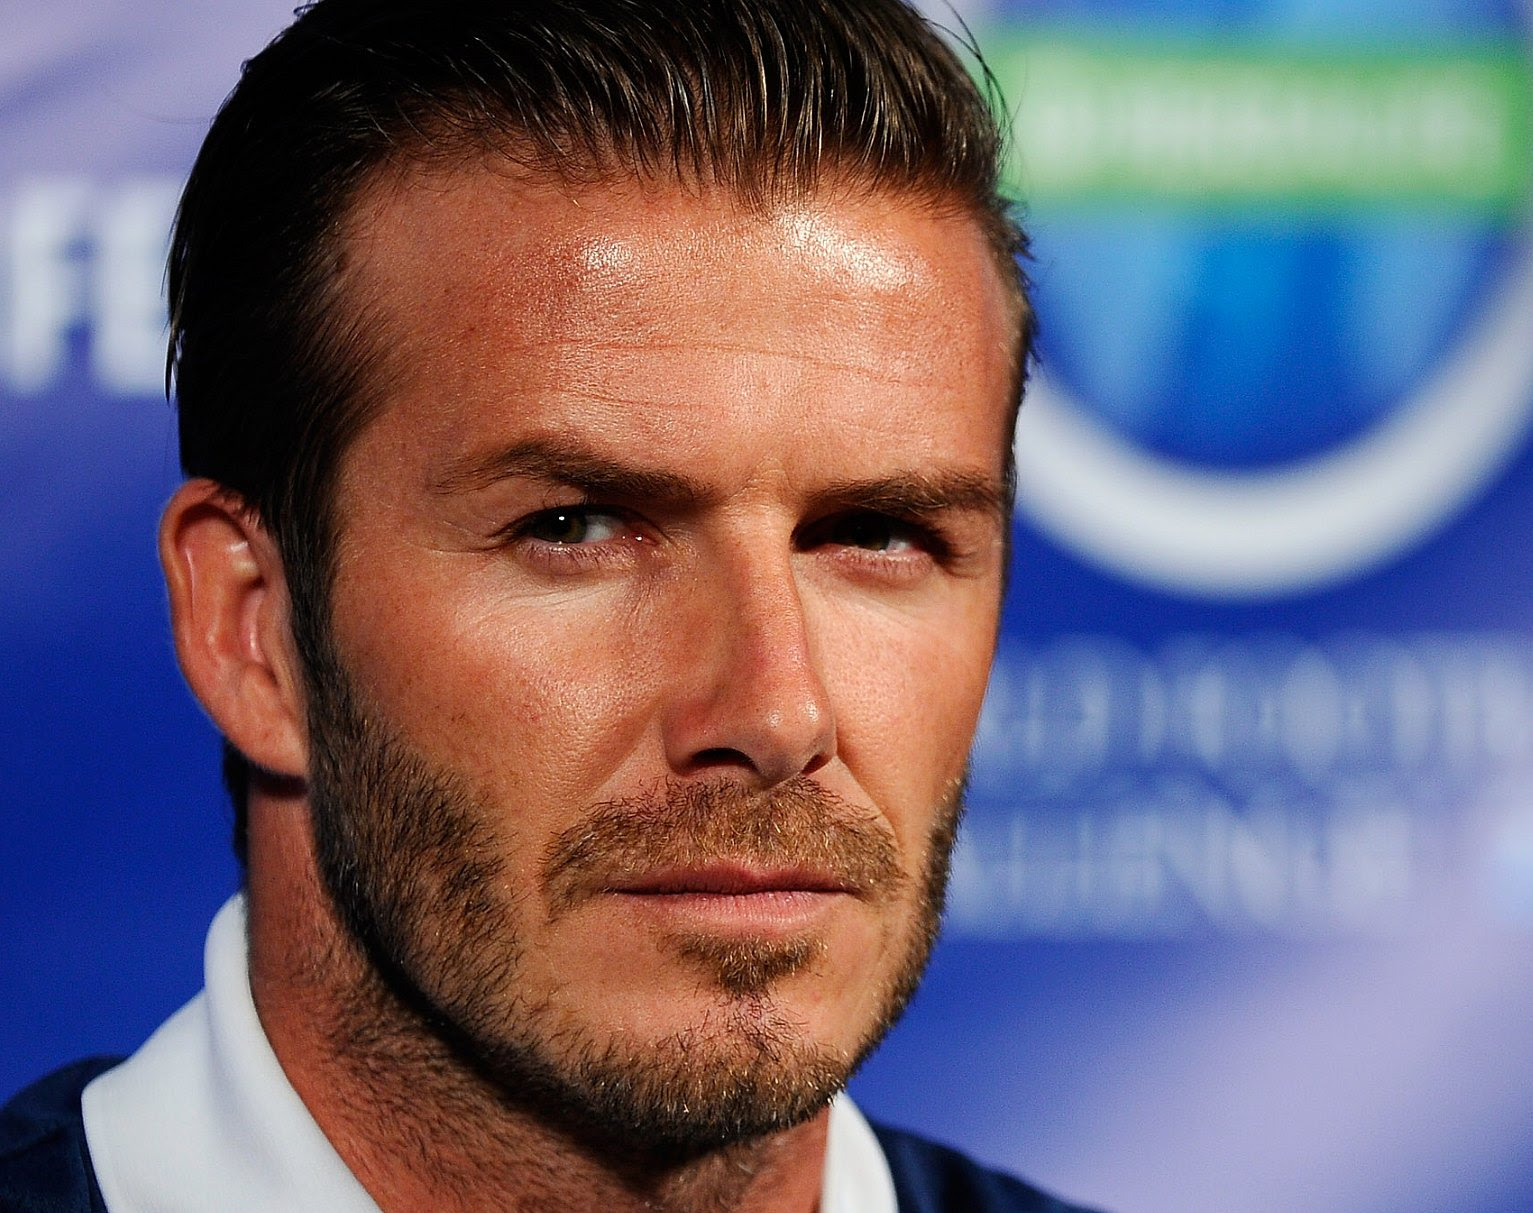 http://www.blogcdn.com/celebrity.aol.co.uk/media/2011/07/david-beckham-1311493481.jpg